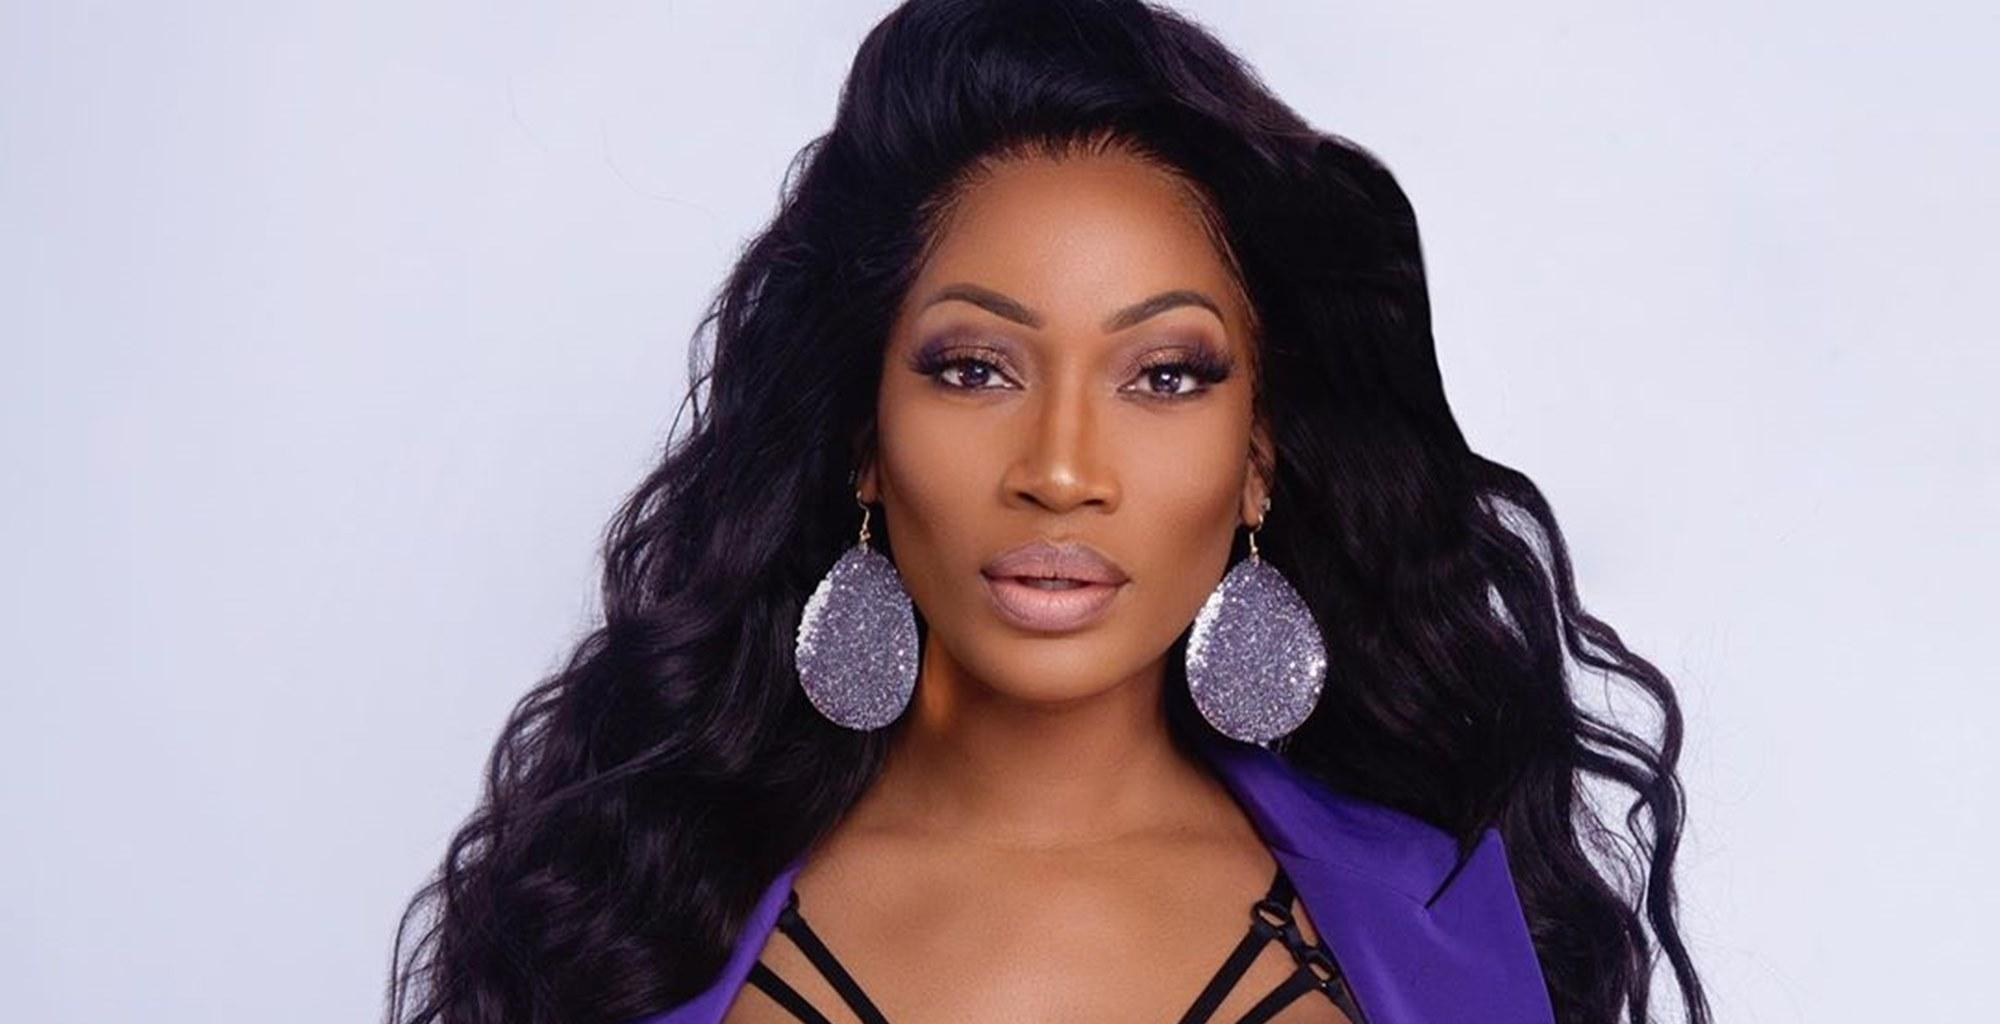 Erica Dixon Claps Back After Being Criticized For Sharing Photos Of Her Spectacular Platinum Blond Hair Color